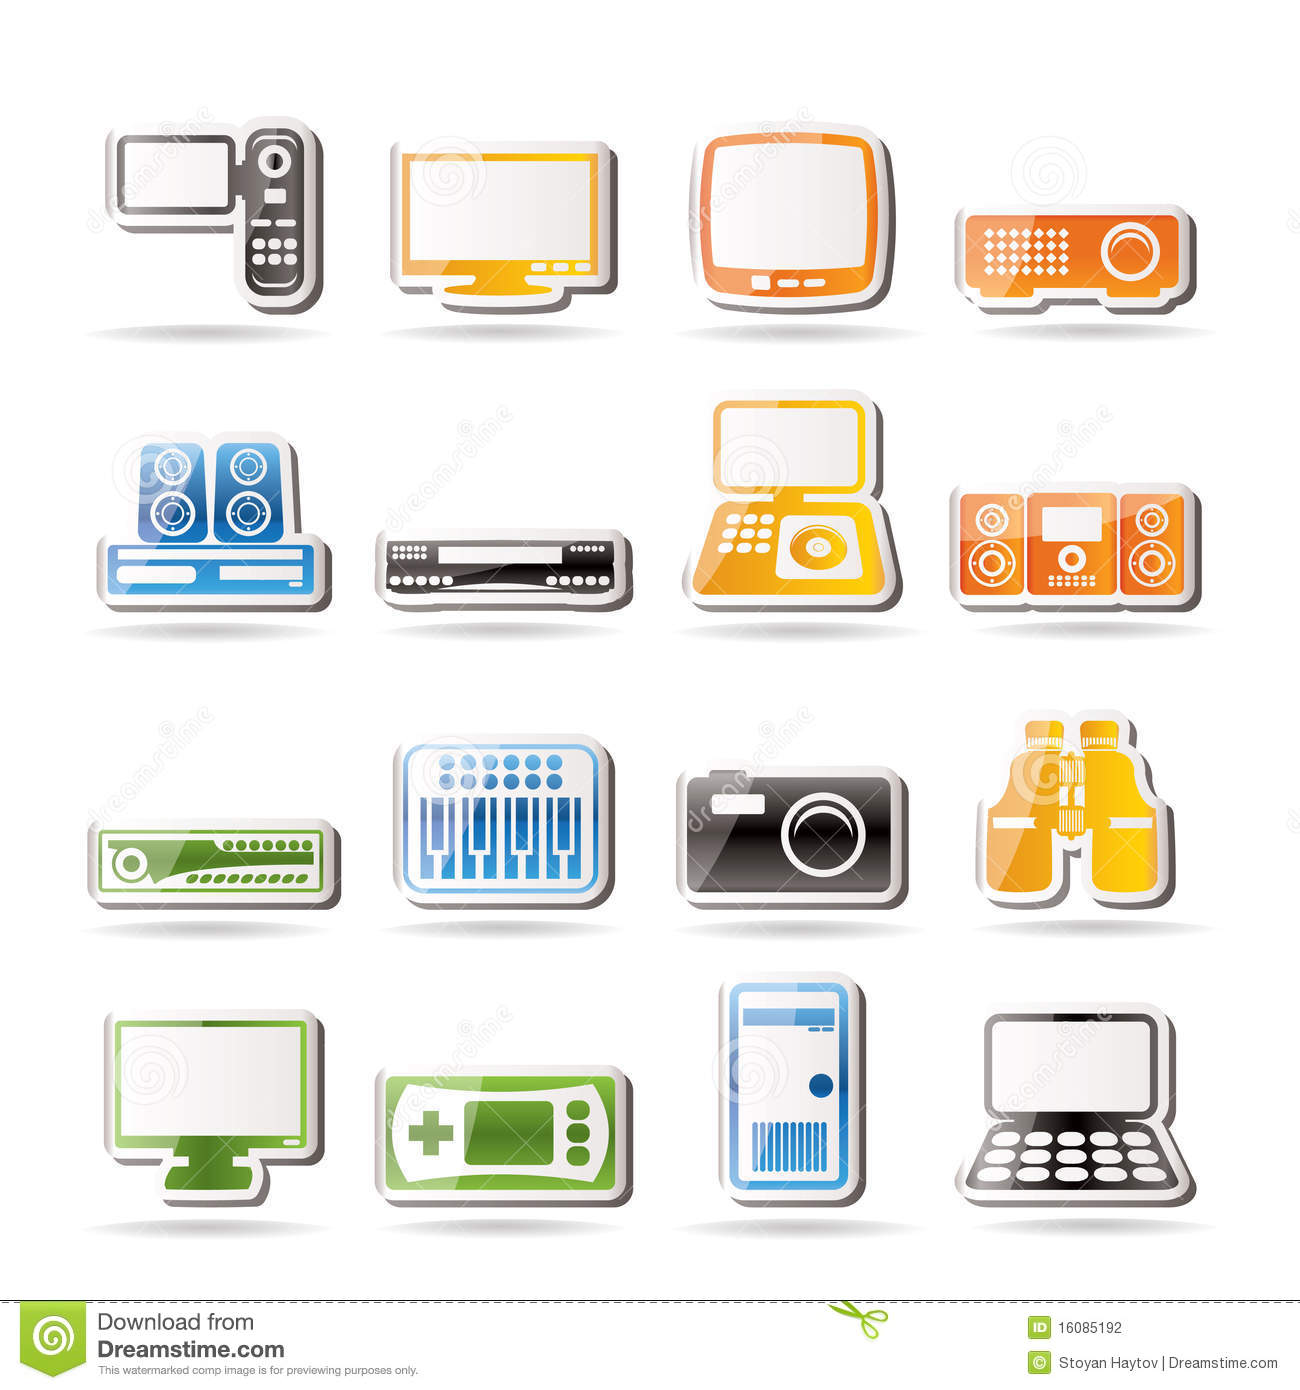 Simple hi tech equipment icons icon set 2